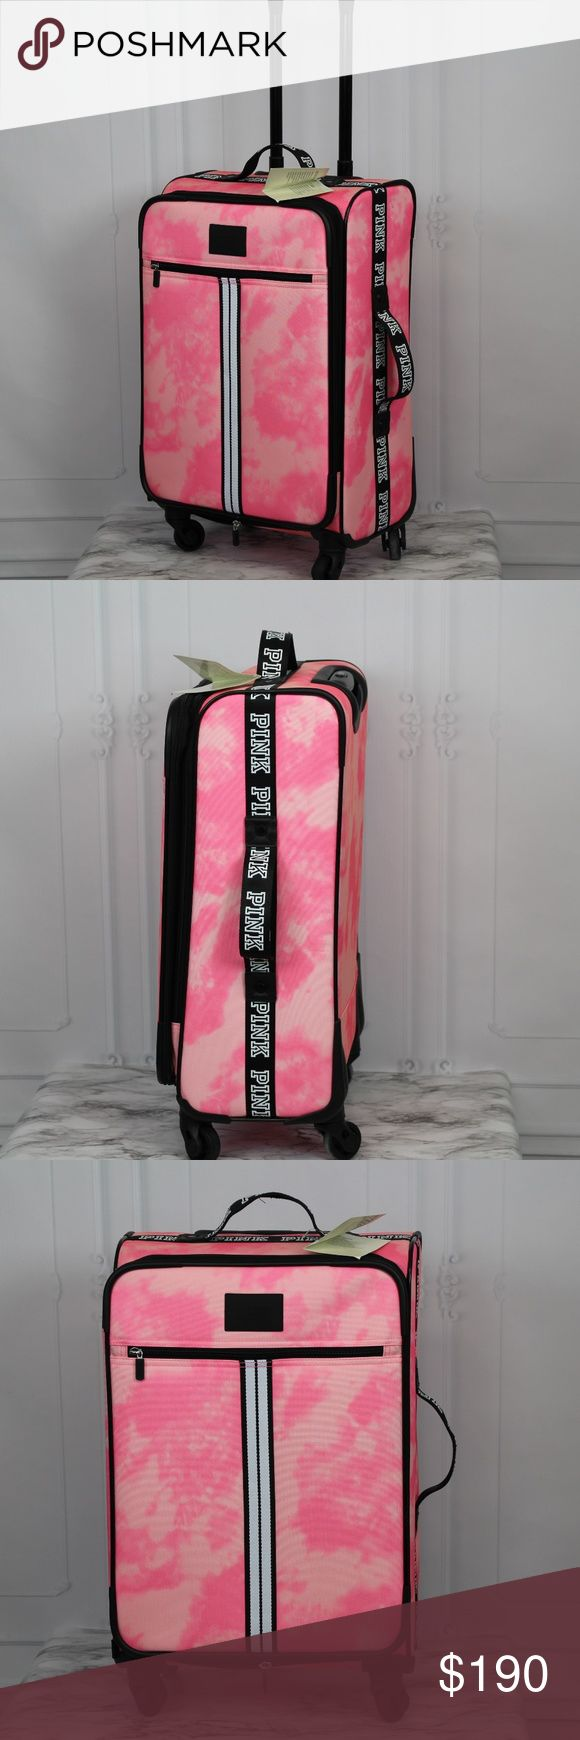 """VS PINK VACAY WHEELIE SPINNER SUITCASE TIE DYE VICTORIA'S SECRET PINK LIMITED EDITION - SOLD OUT Pink TIE DYE VACAY 360 SPINNER SUITCASE New with some tags (missing price tag) -Has Scuff on back handle (See picture 5)  - OPEN TO A REASONABLE OFFER!   Dimensions: 21"""" Long x 14.25 Wide x 7"""" Height  -Four 360 Spinning Wheels -Expandable Main Compartment -Retractable Handle System -Exterior Pocket for last minute ideas -Top & Side Handles for easy lifting  Check out my other items. If you have…"""